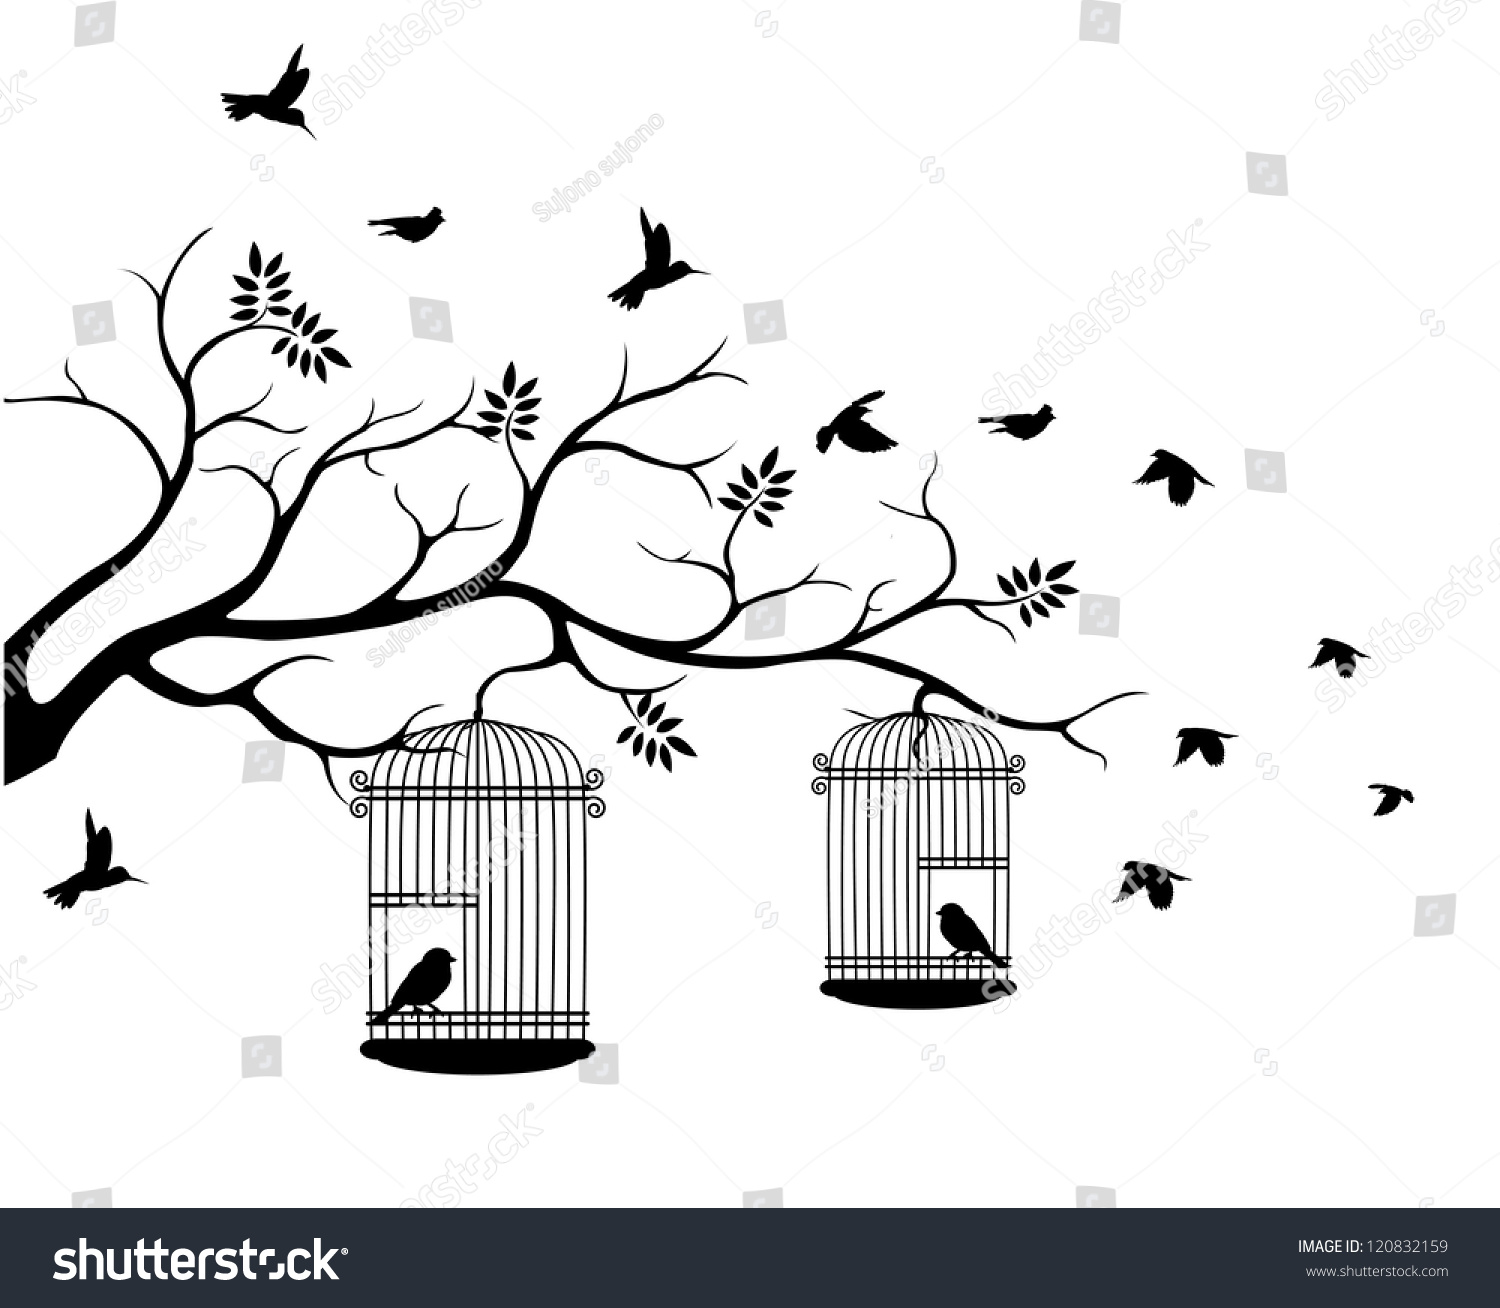 Bird Flying Out Of Cage Drawing Tree silhouette with \x3cb\x3ebirds ...